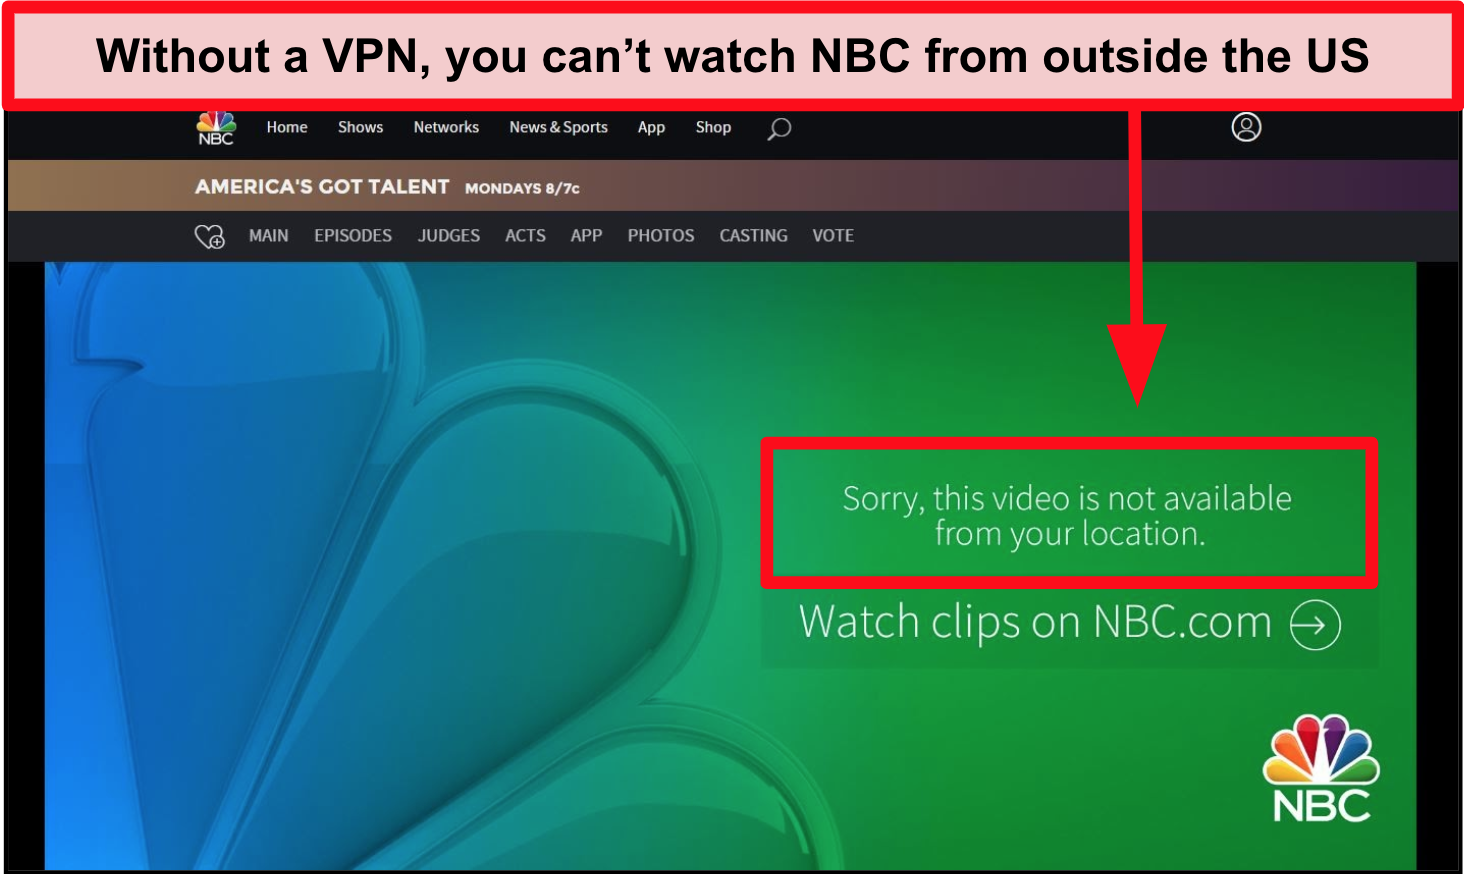 NBC error message when visiting from outside the US